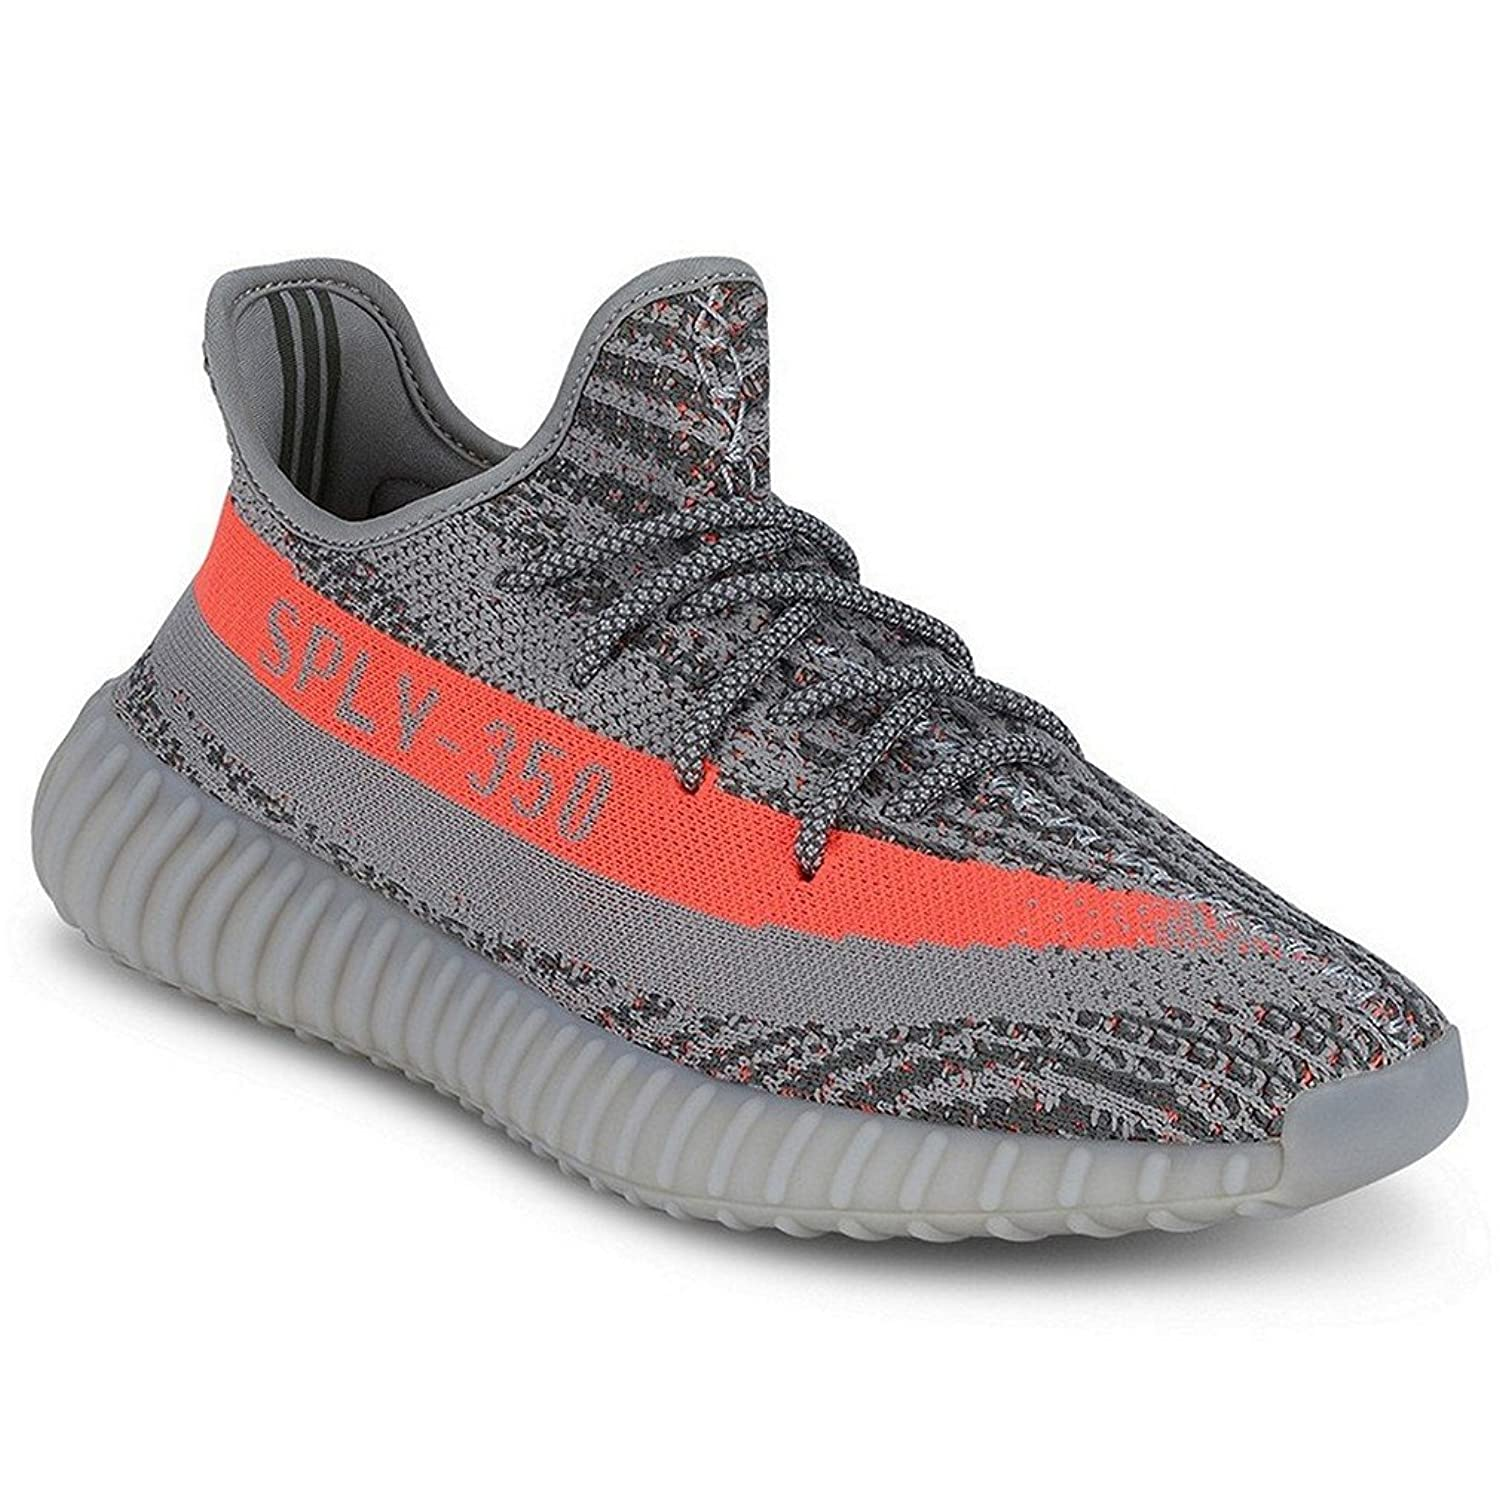 adidas yeezy boost 350 v2 womens-limited edition